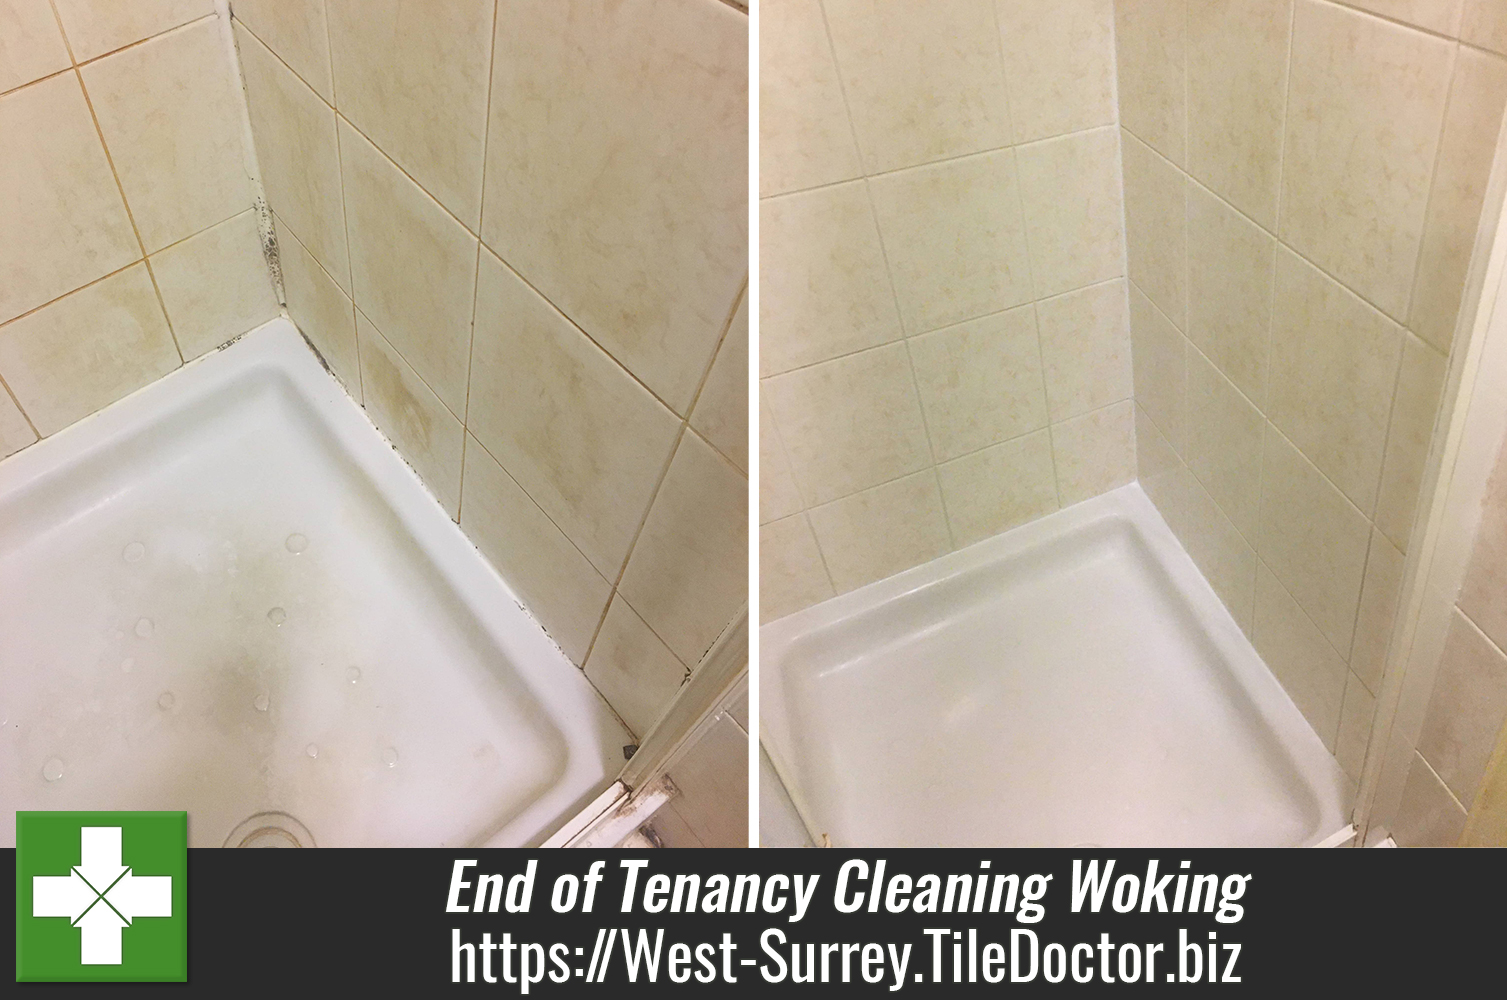 End of Tenancy Shower Cubicle Renovation in Woking